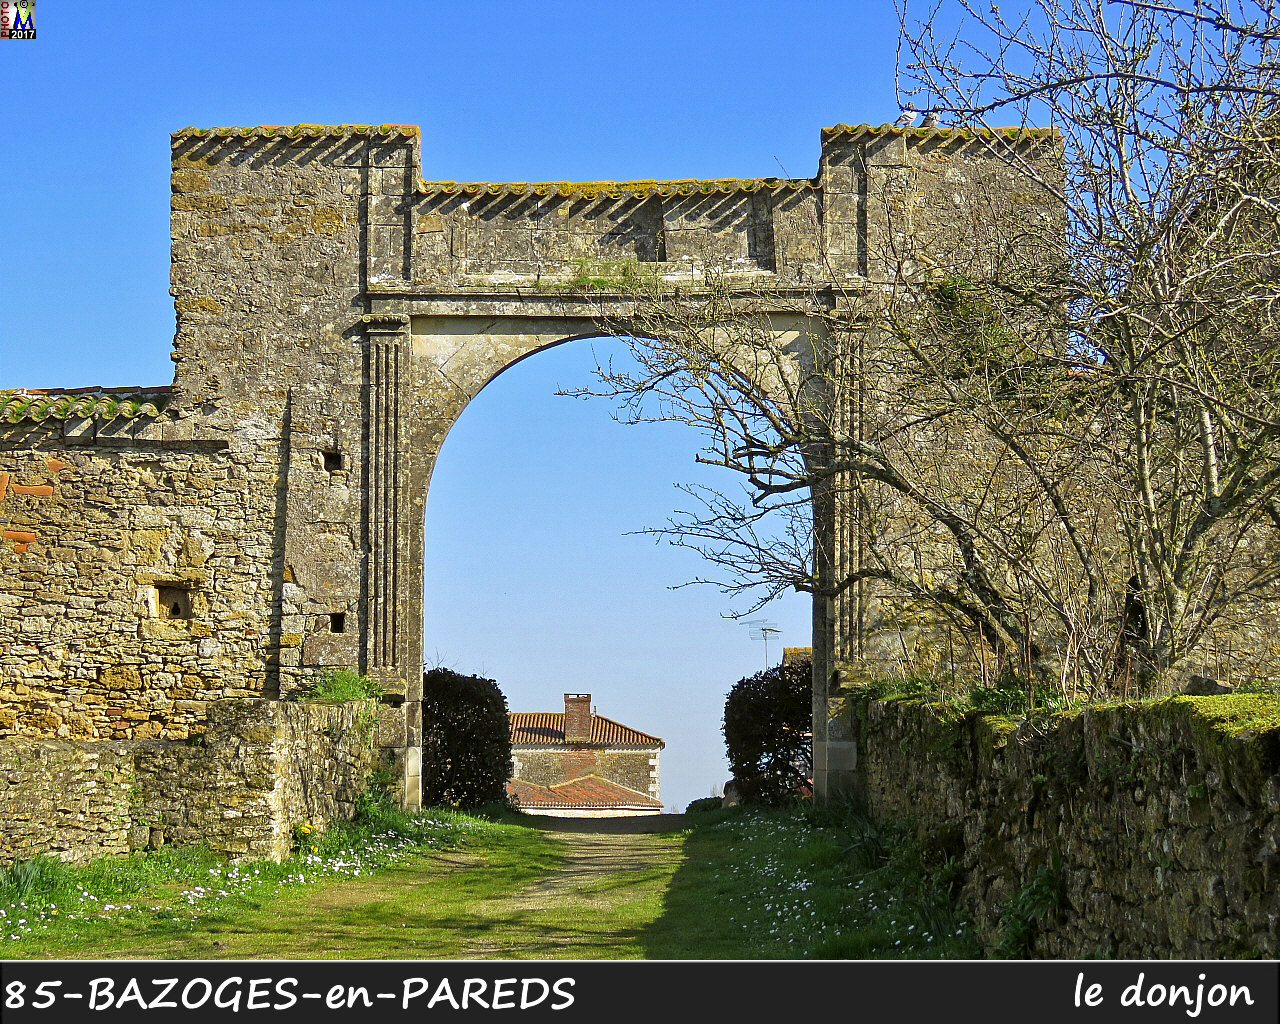 85BAZOGES-PAREDS_donjon_1006.jpg